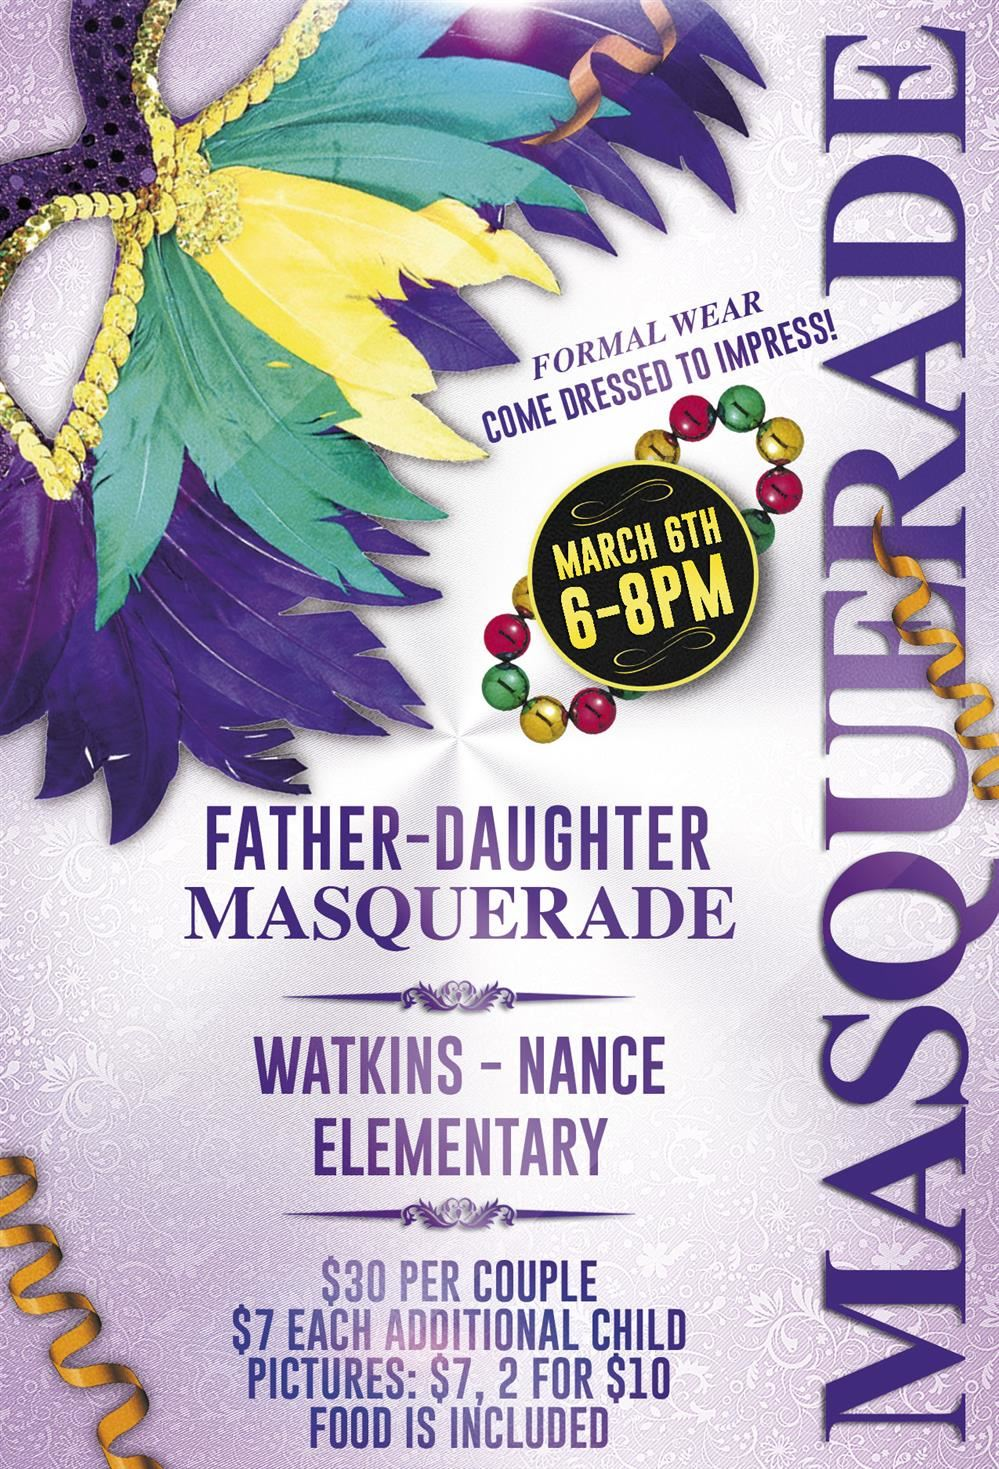 Flyer for the Father Daughter Masquerade Dance